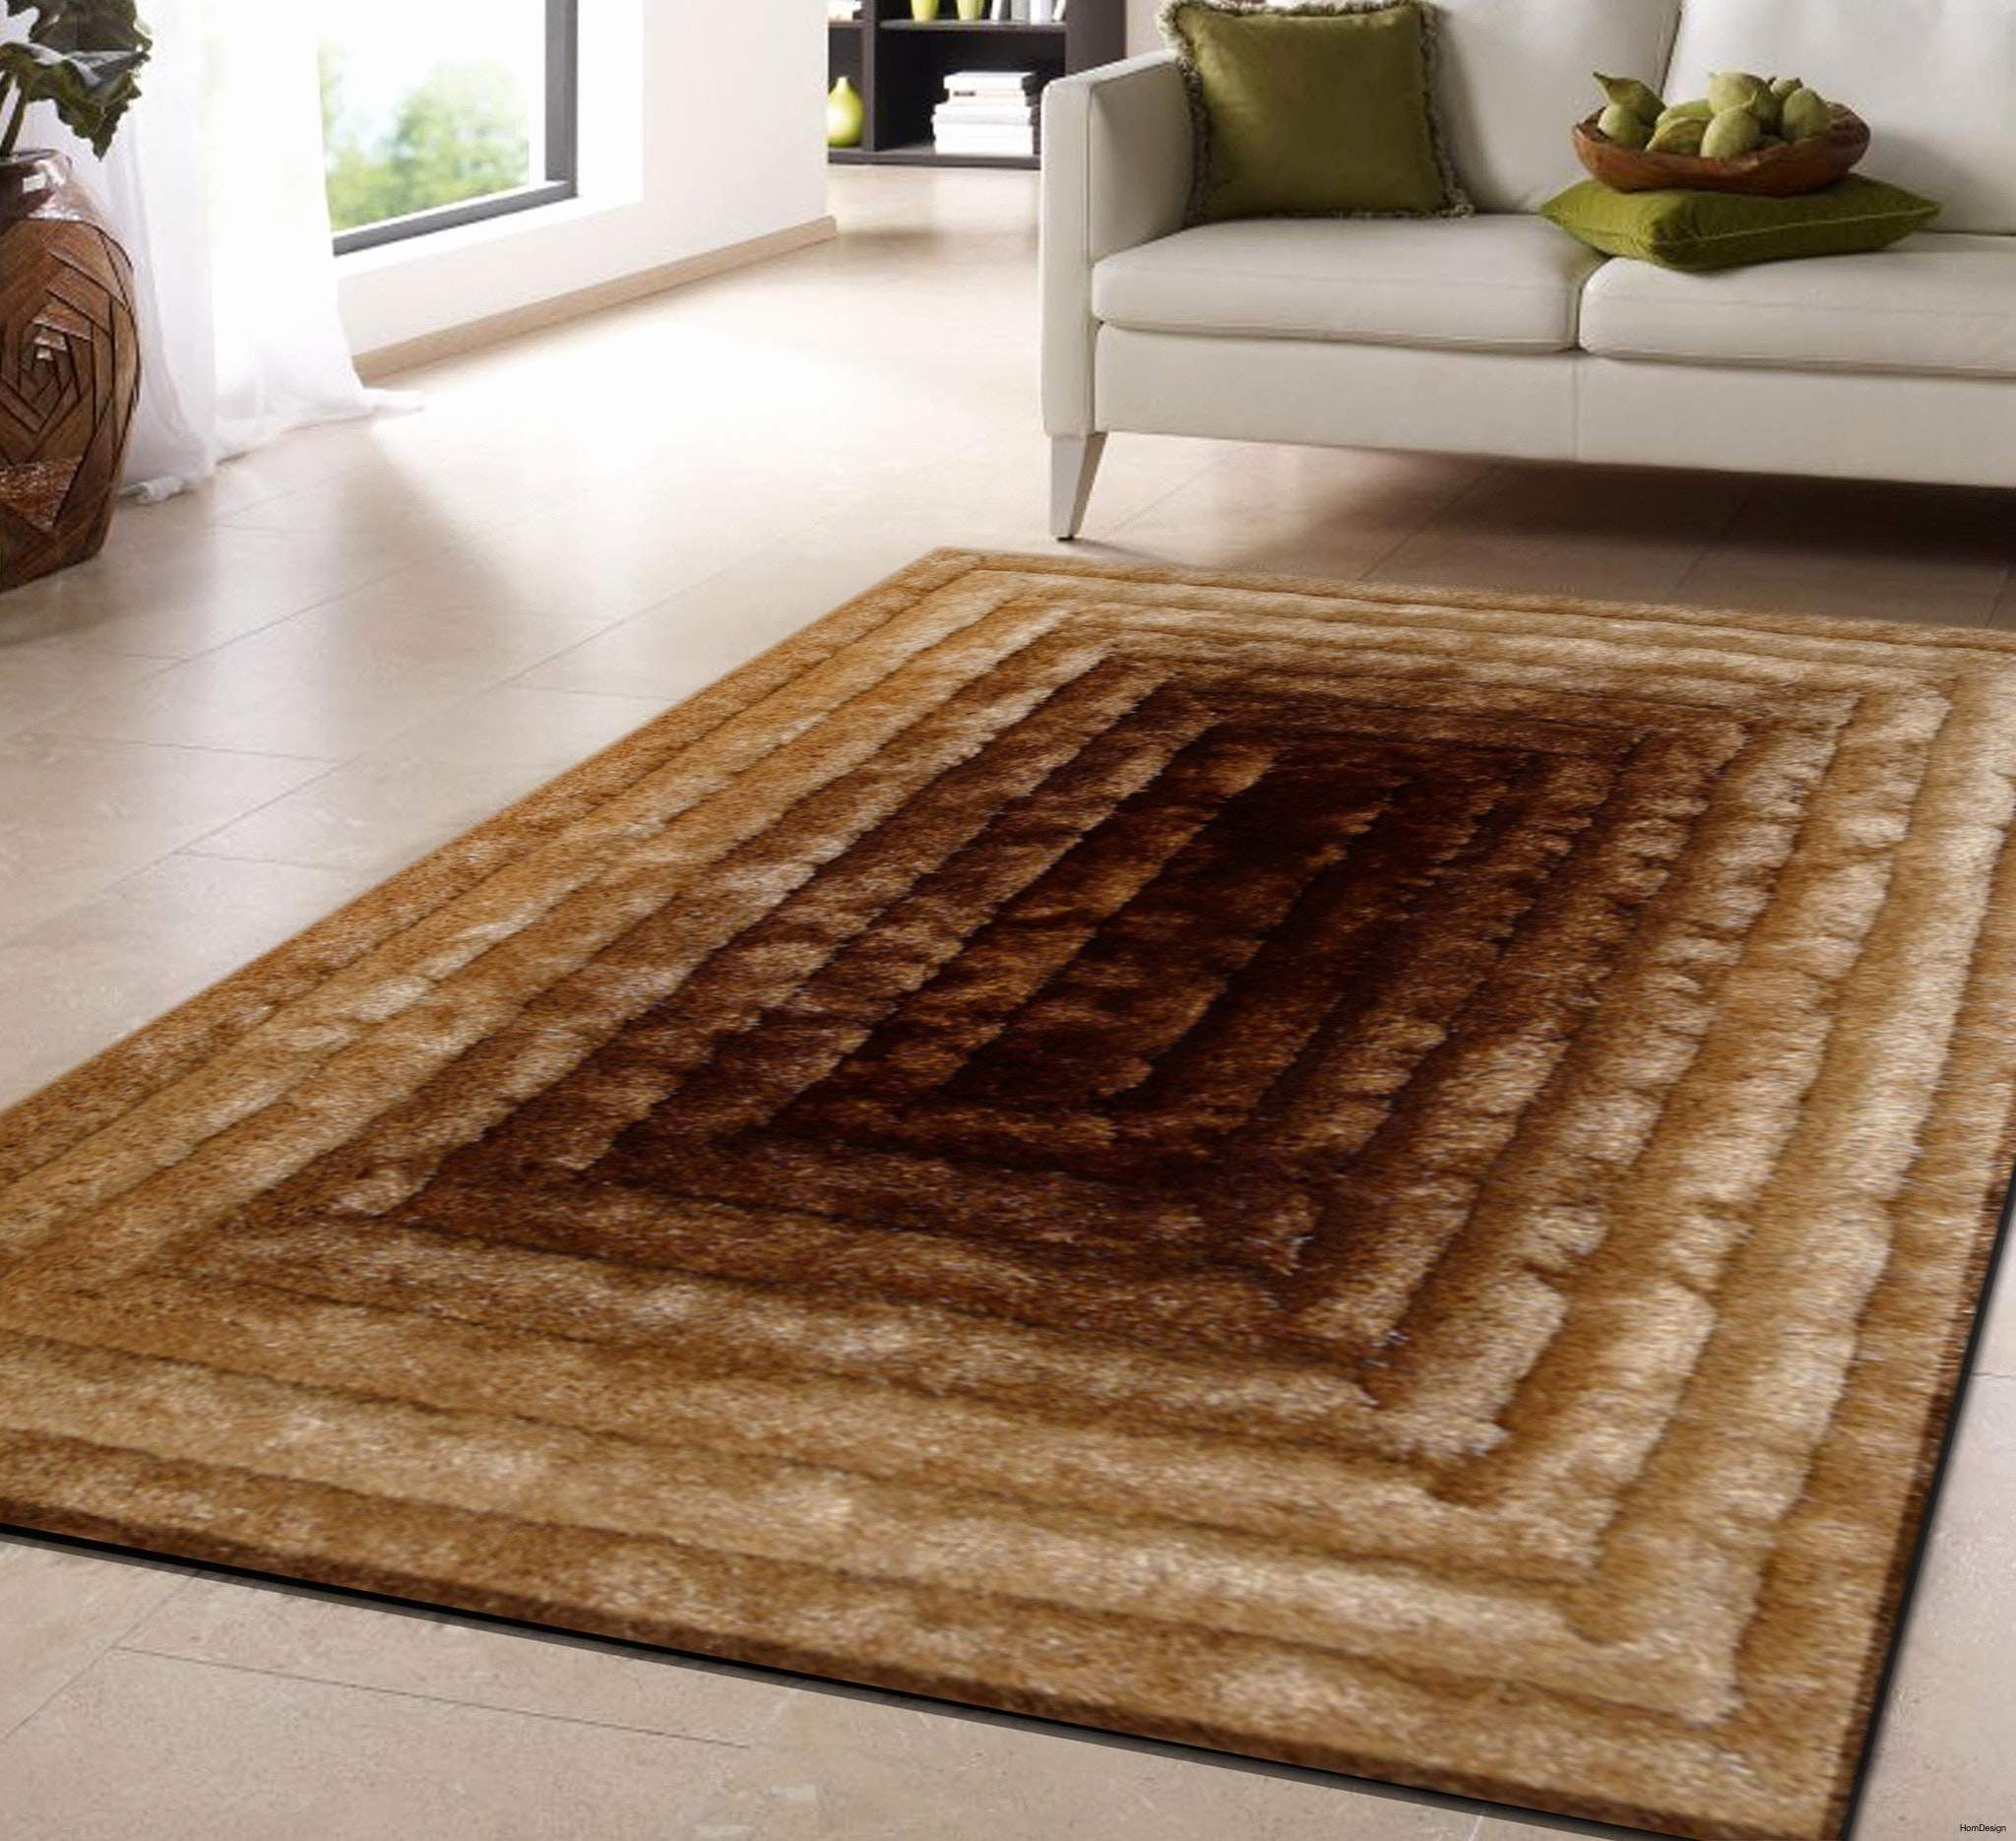 Fluffy Carpet for Bedroom Awesome 23 Popular Hardwood Floor Bedroom Rug